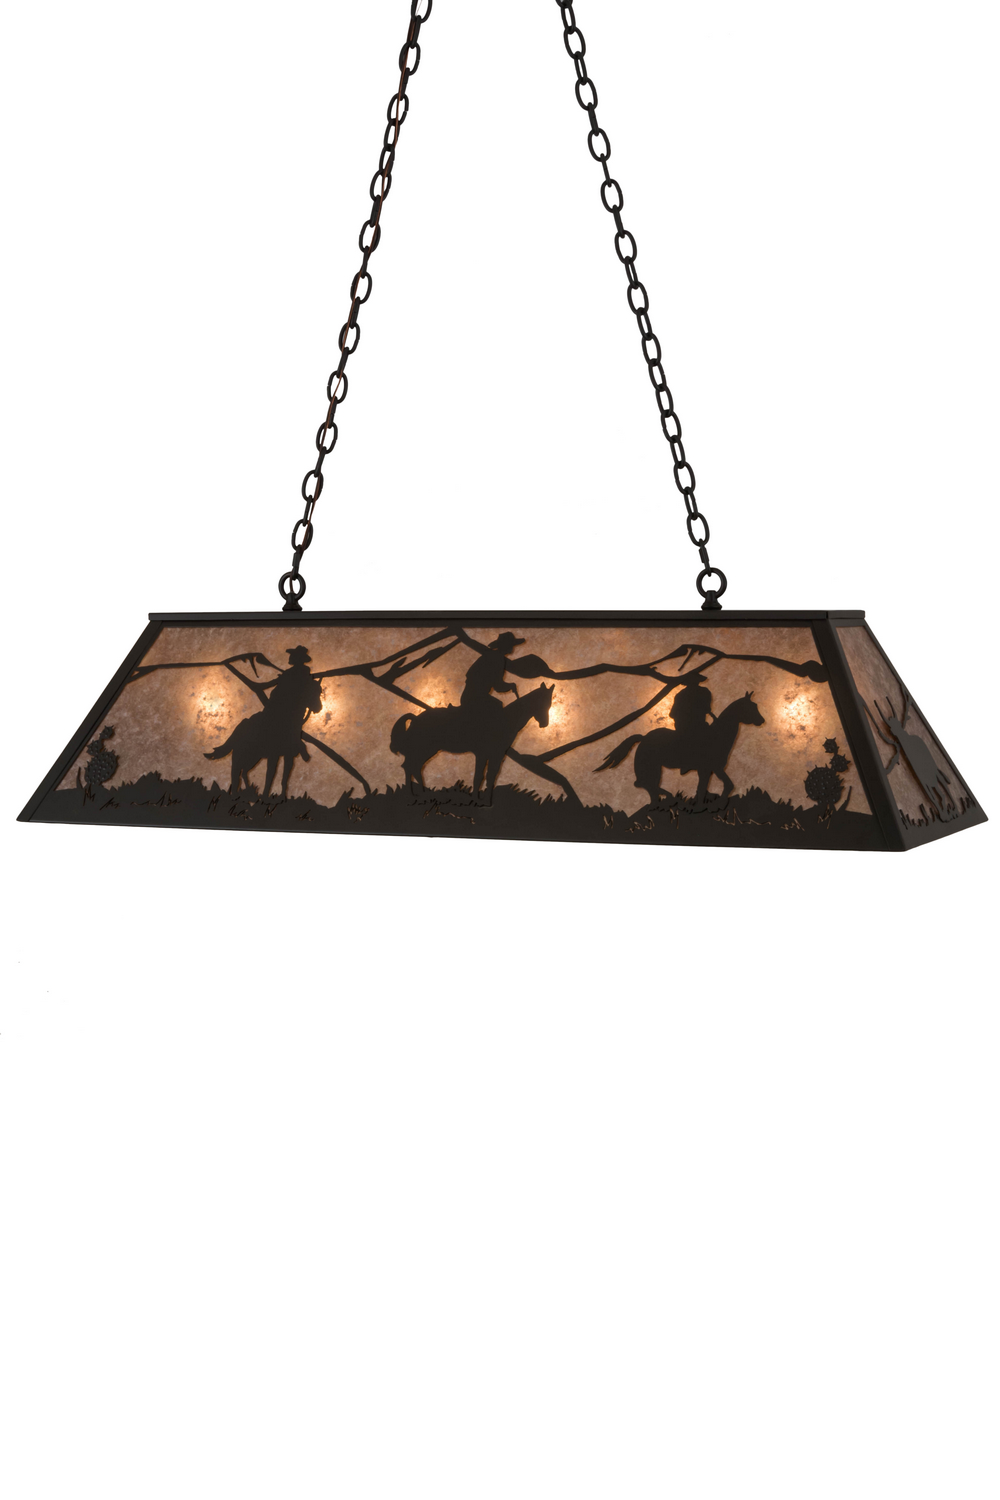 Six Light Oblong Pendant From The Cowboy Steer Collection By Meyda Tiffany 184715